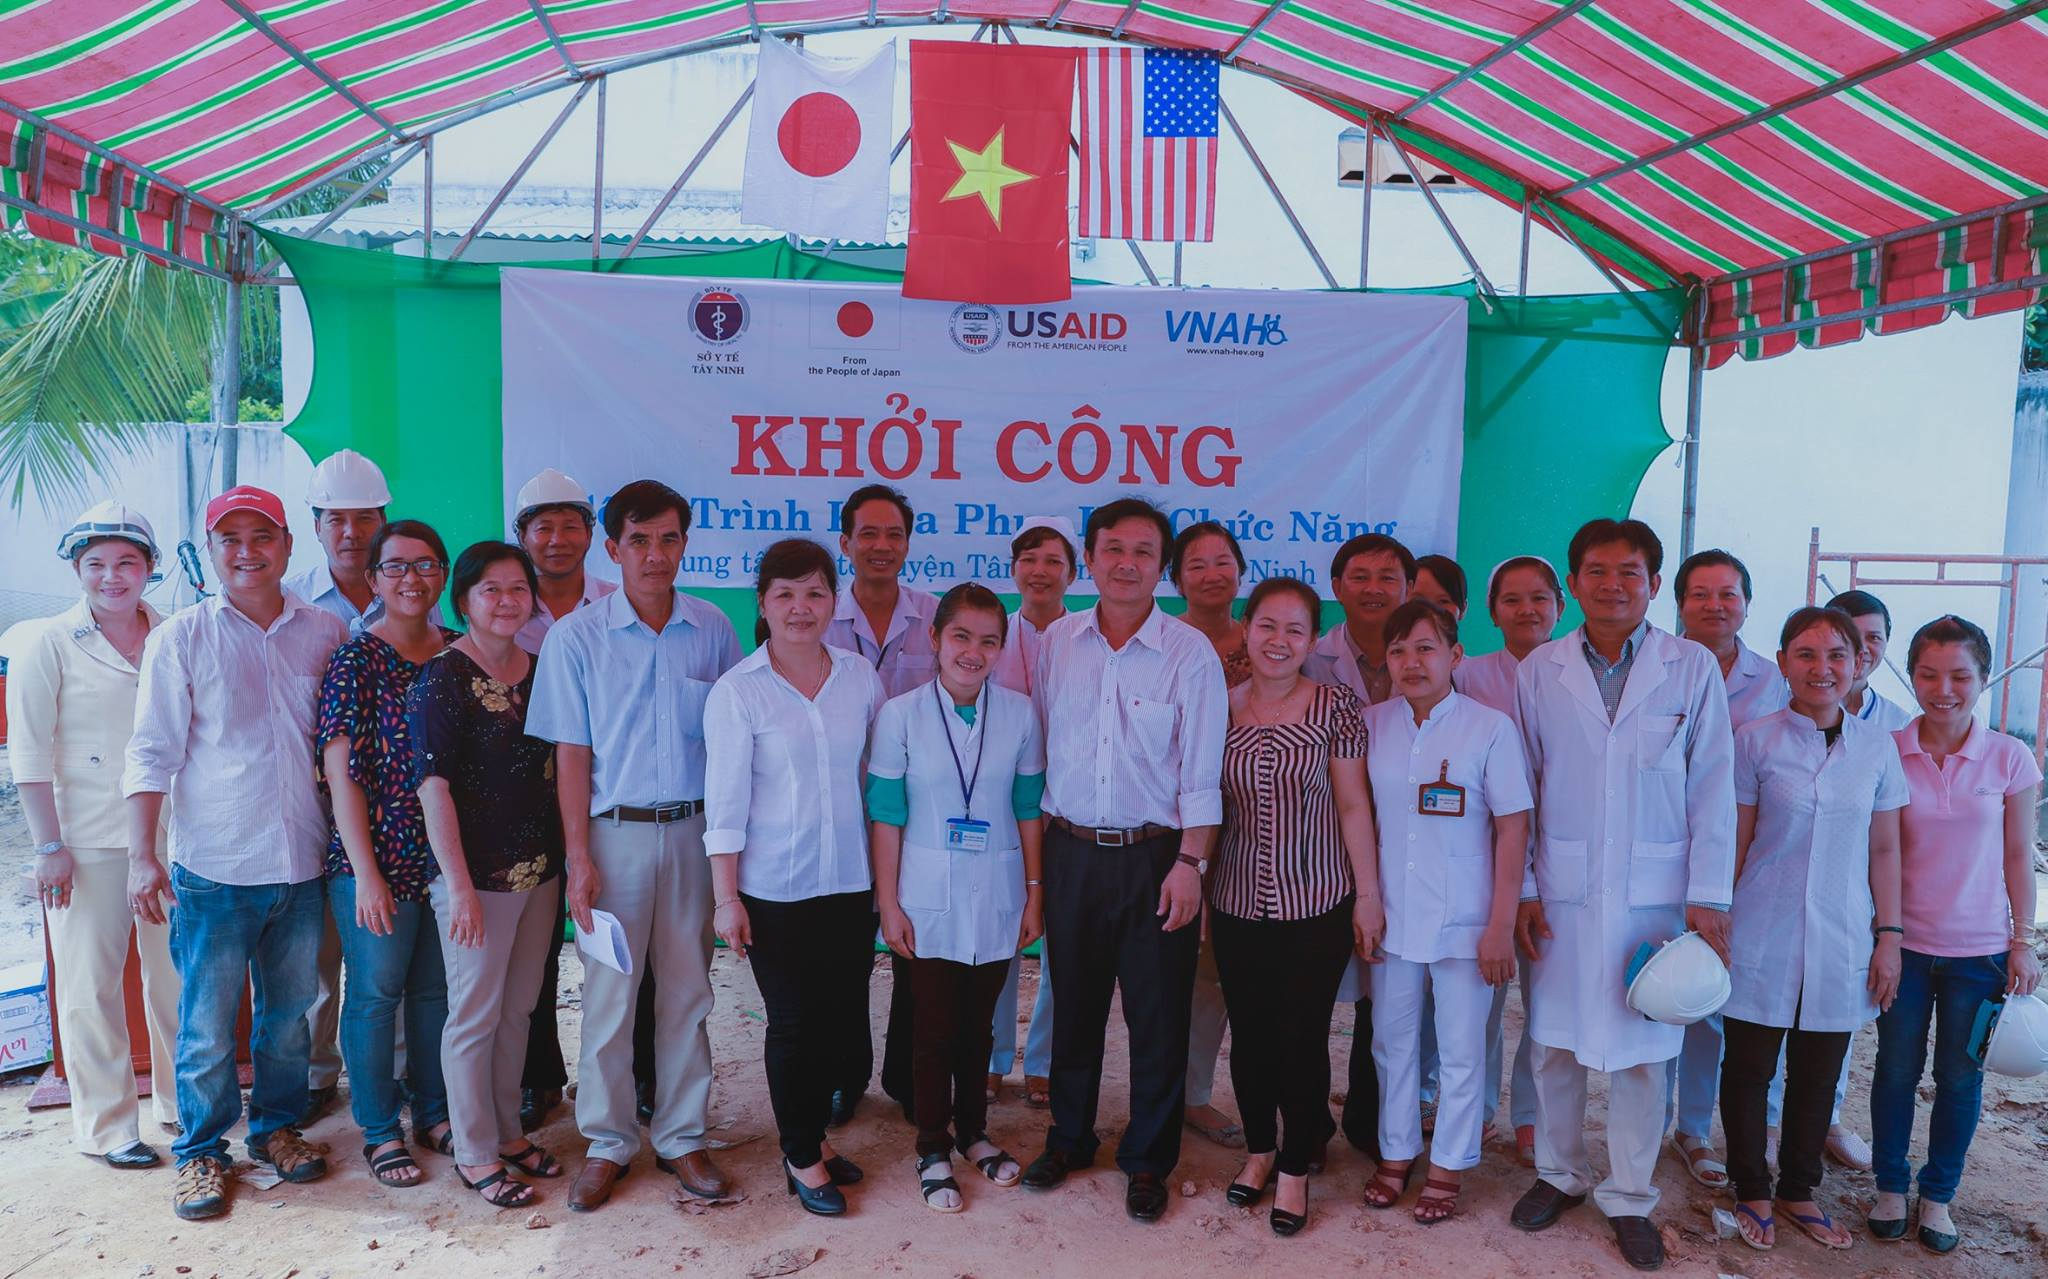 VNAH Team in Tân Biên District, Tây Ninh Province on May 12, 2016.